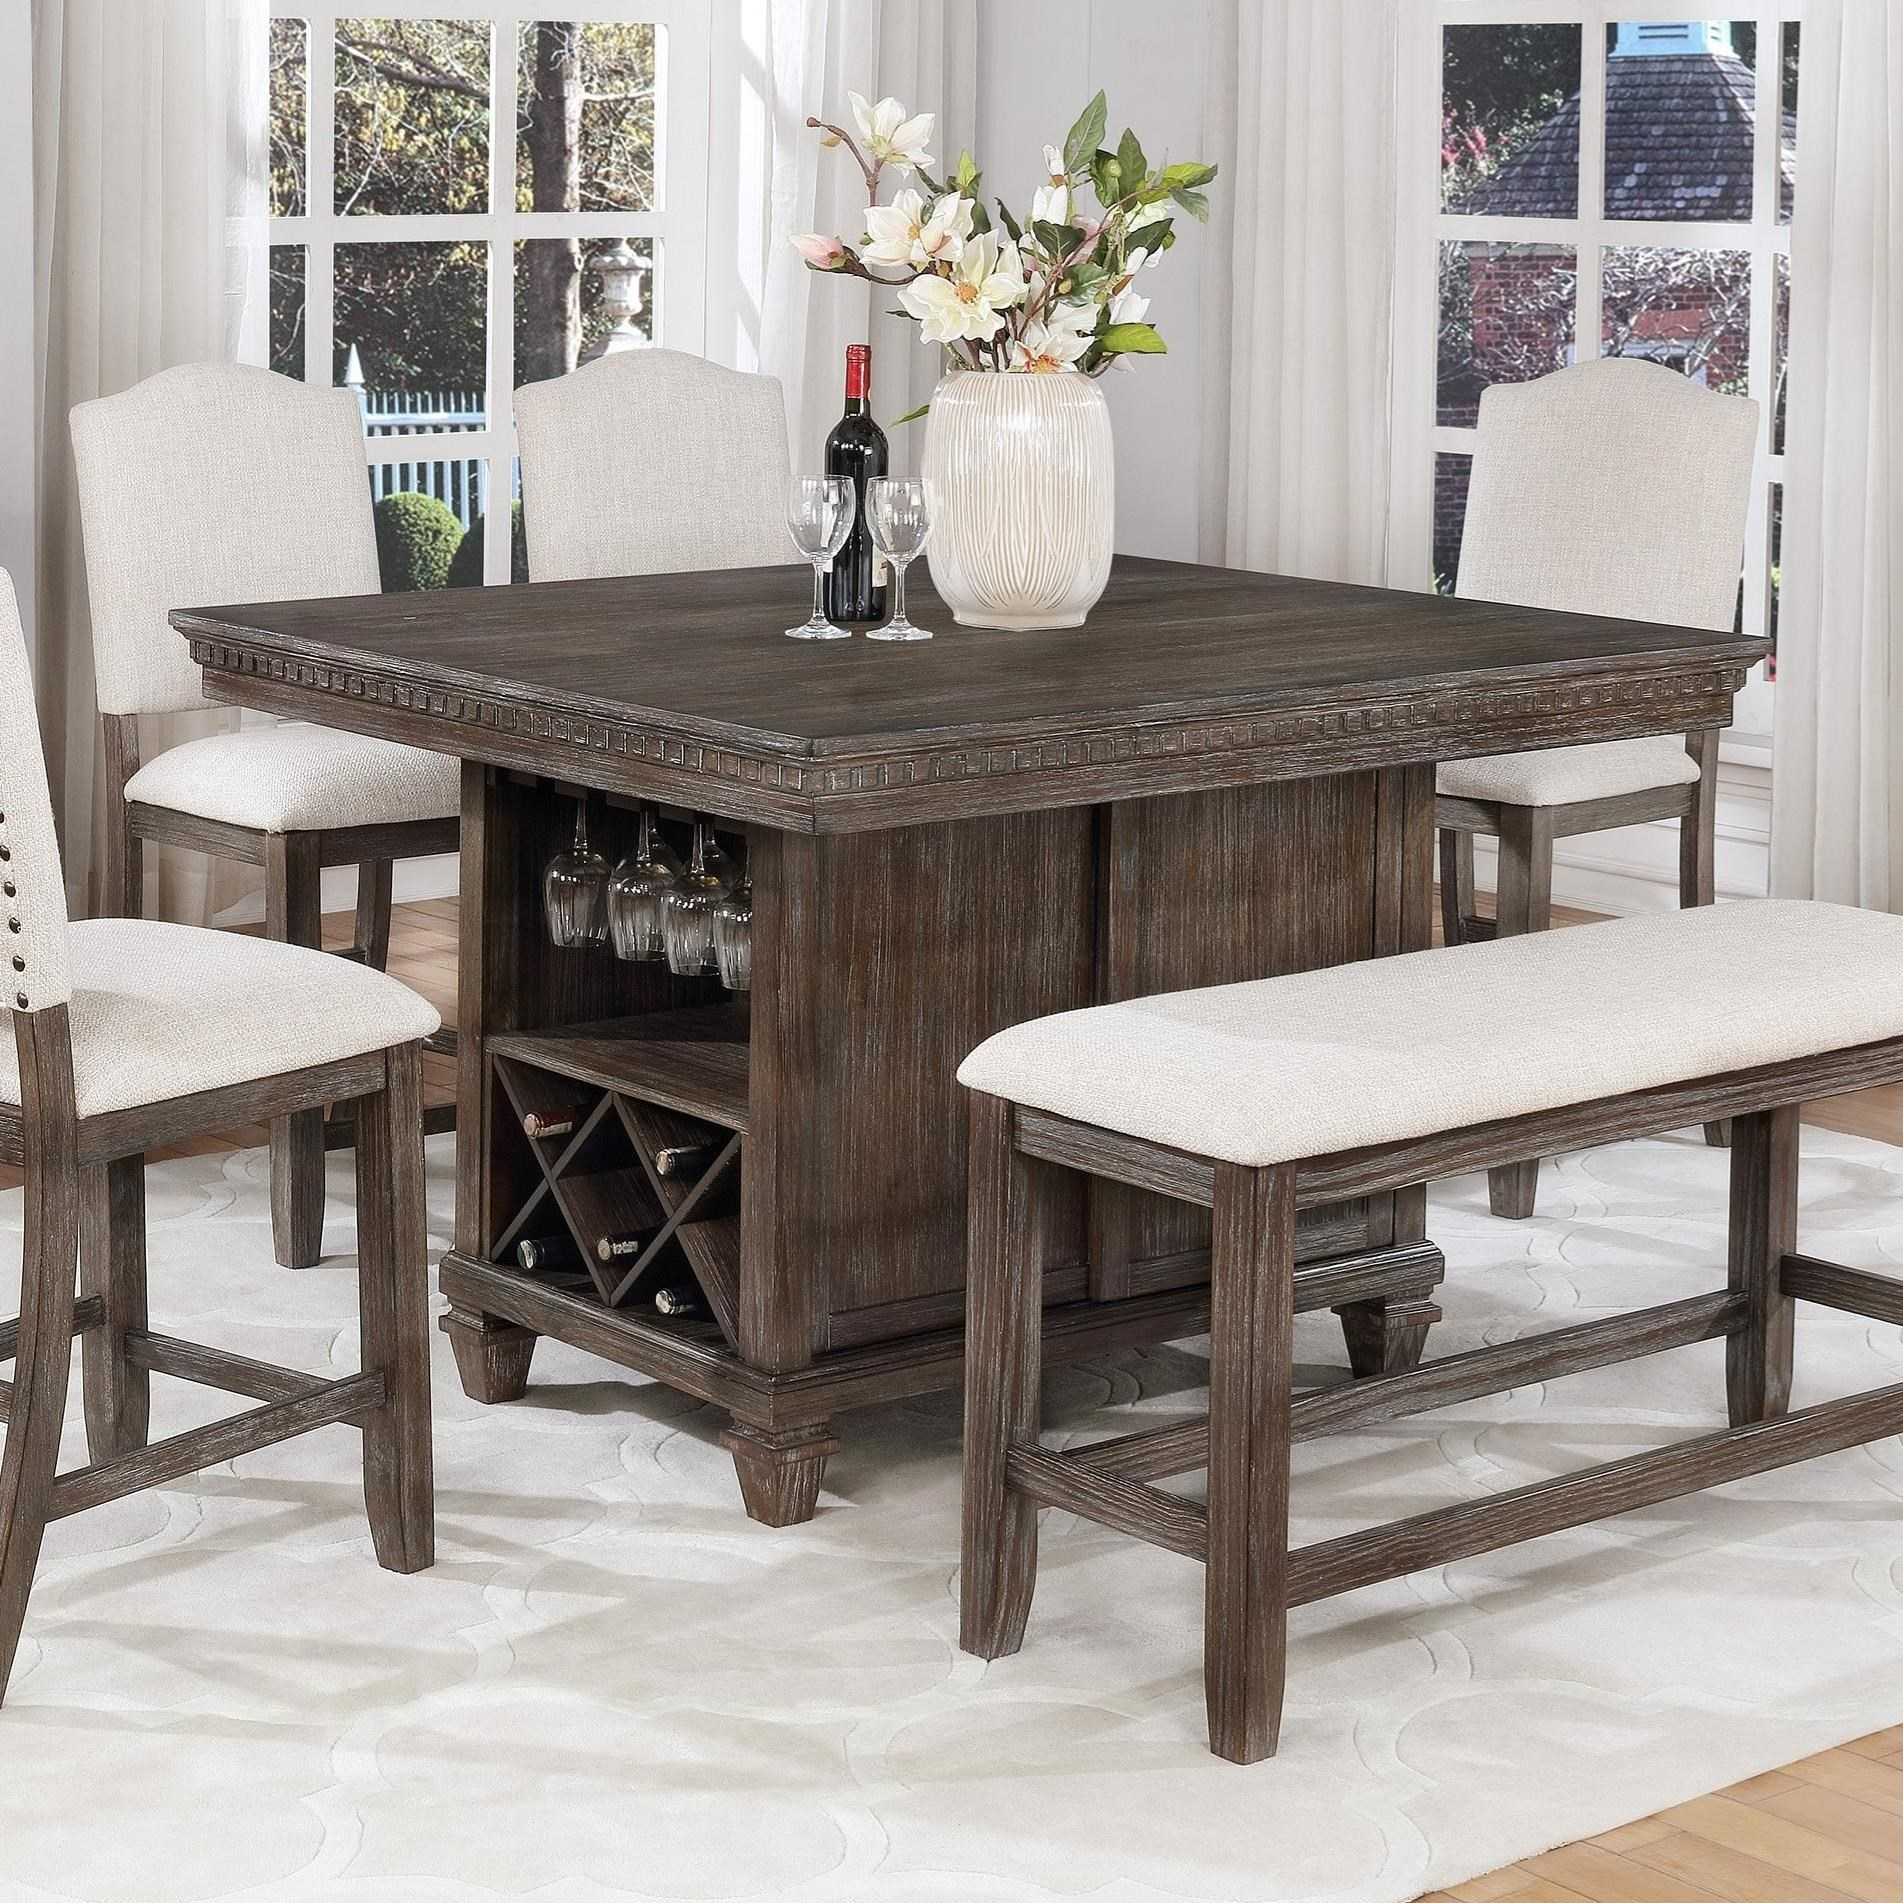 Regent Counter Height Table by Crown Mark at Wilcox Furniture